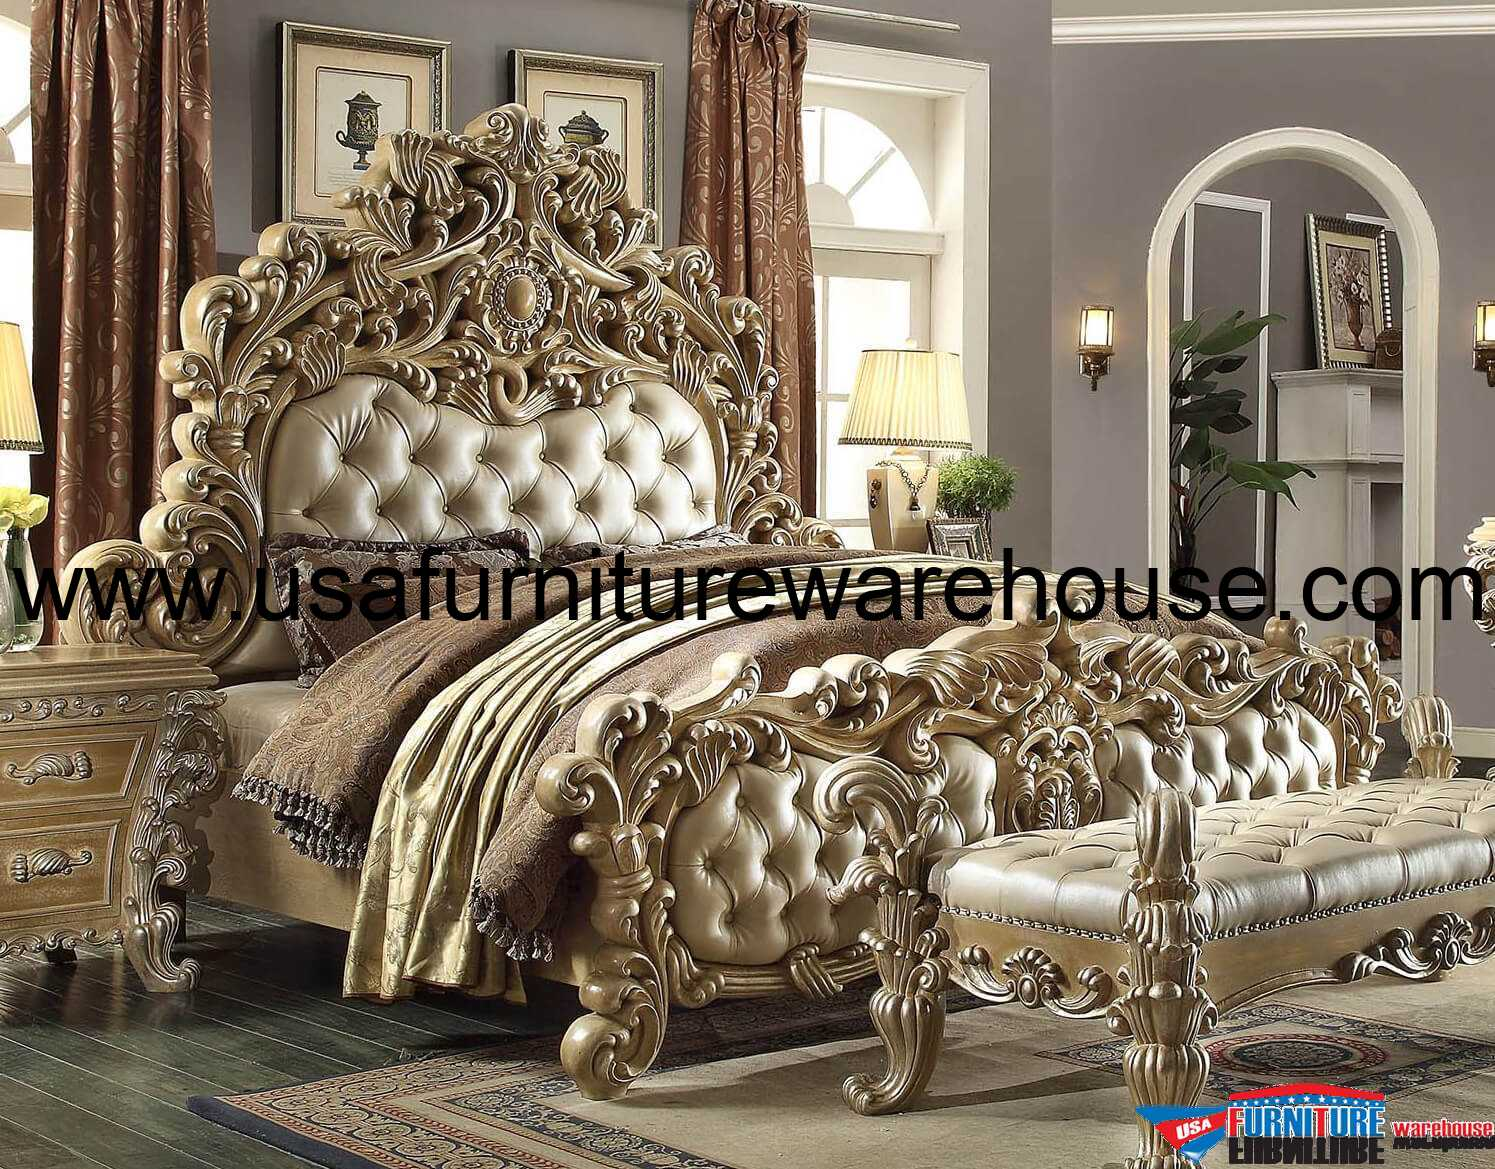 Homey design royal kingdom hd 7012 bed for Hd designs home decor